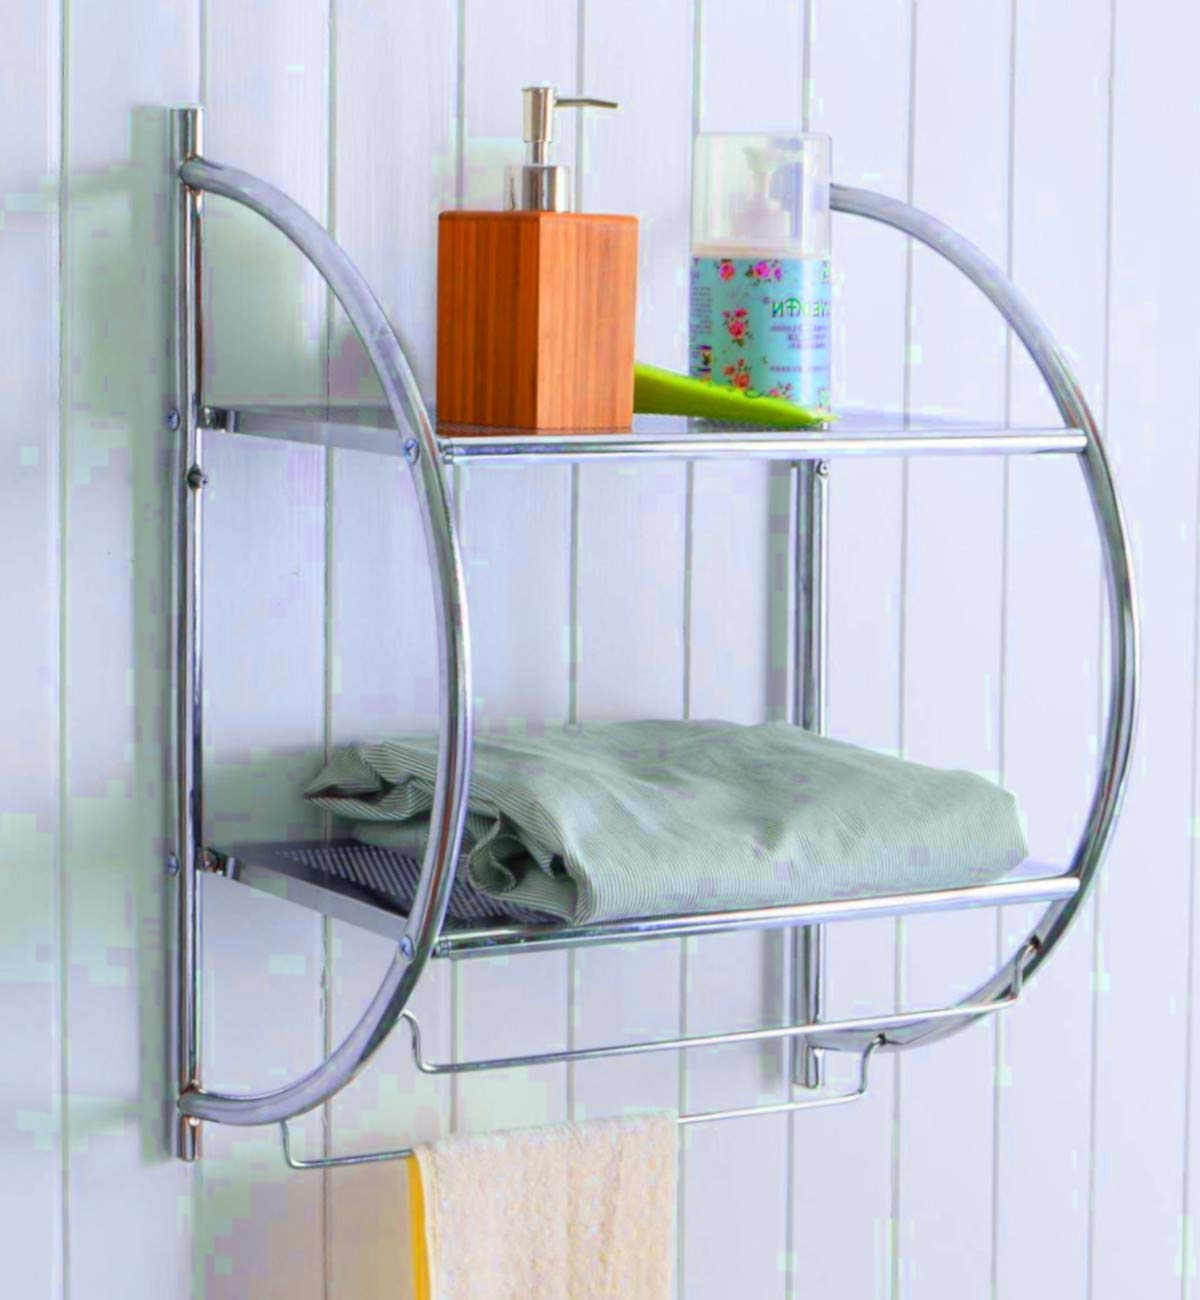 SET OF 2 Half Circle Wall Mount Bathroom Shelf Bathroom Storage Cabinet Organizer Small Slim Rack Furniture Towel Holder Hanging Shelving & Ebook by AllTim3Shopping. - The Half Circle Wall Mount shelf unit is a wall mounting, 2 tiered hanging open cabinet furniture. Ideal for bathroom use, has great rust resistance. Slim and small it ensures smart storage, with two narrow racks and two bottom towel holder bars that keep your shower essentials by your hand's reach. - shelves-cabinets, bathroom-fixtures-hardware, bathroom - 61K yaUfYpL -